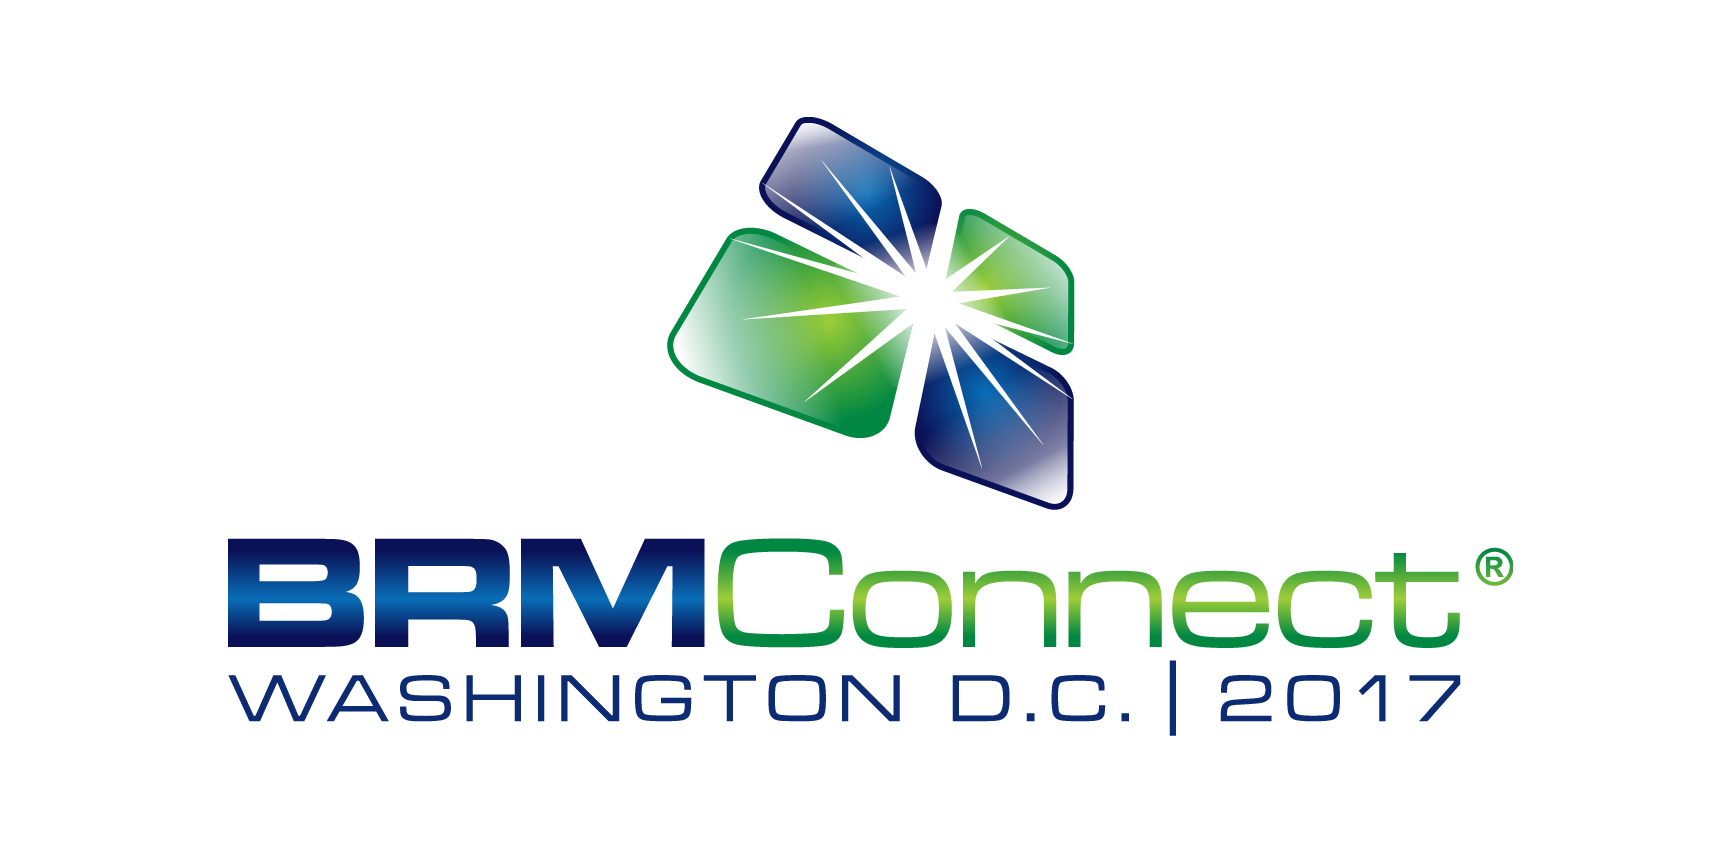 2017 BRMConnect Conference - Washington, D.C.